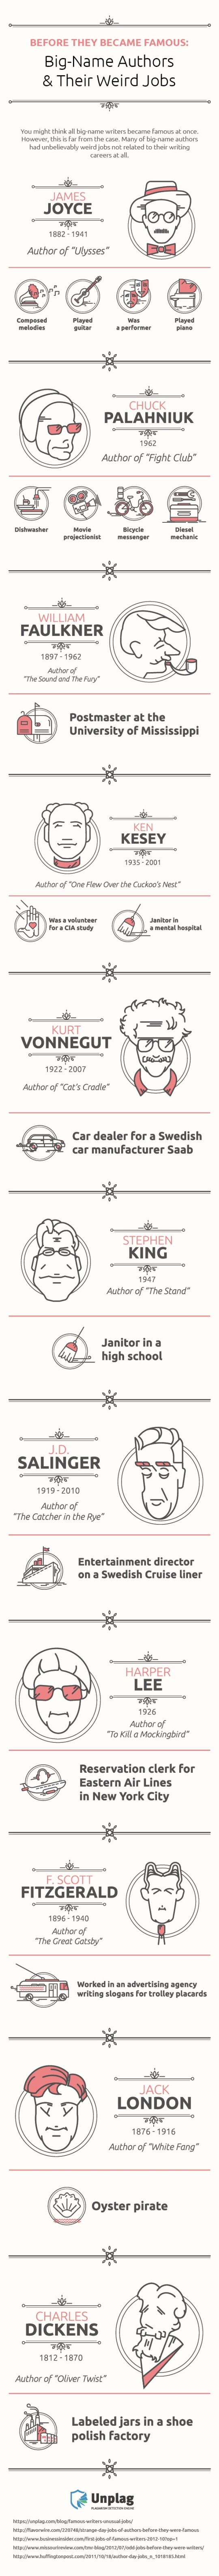 Weird jobs writers had before they became famous #infographic